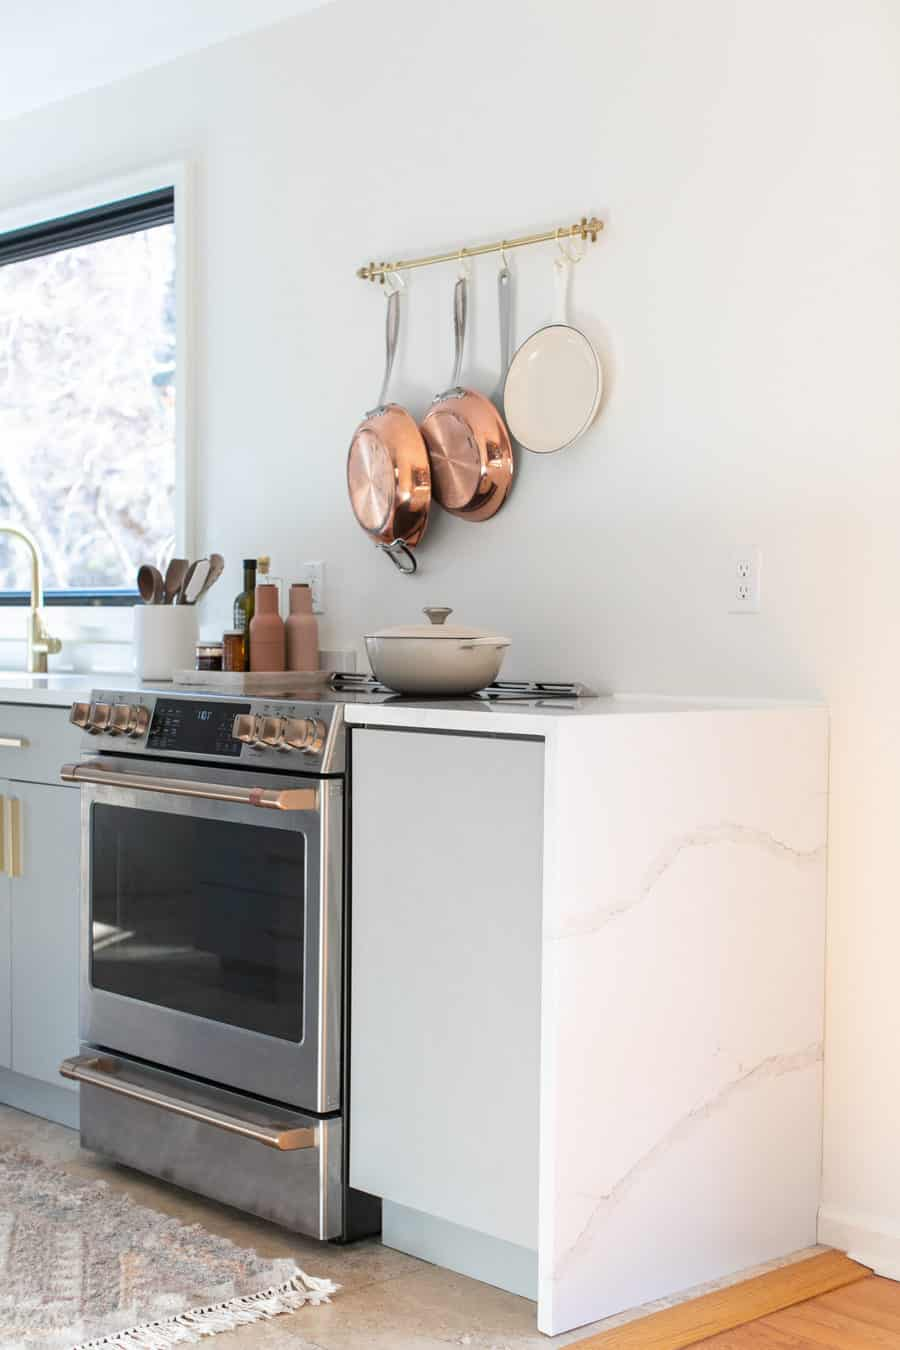 Small kitchen remodel with copper pots, cafe appliances